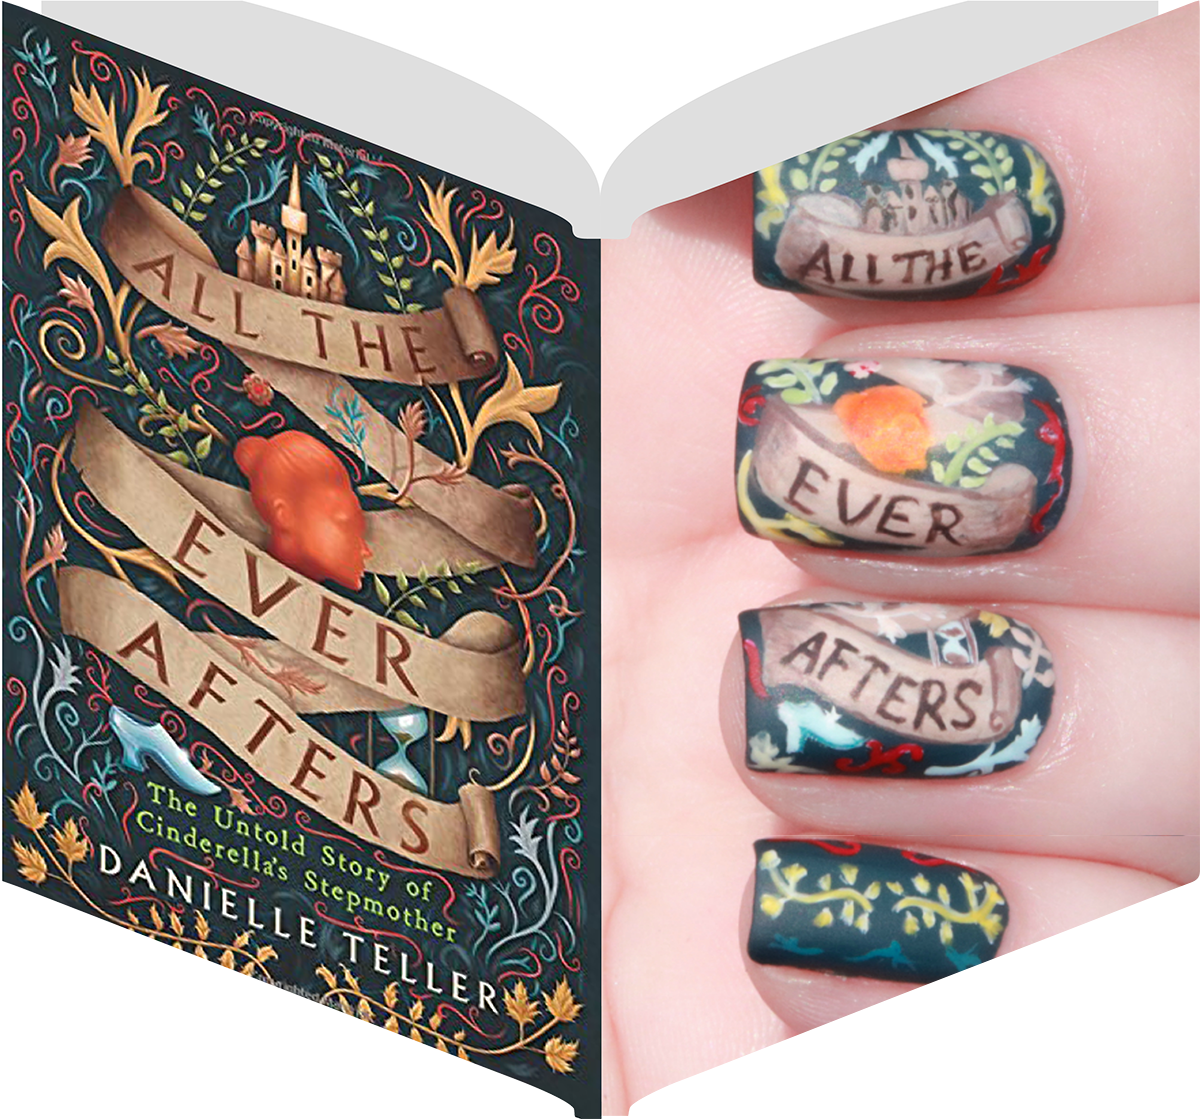 100 Best Nail Art Designs Inspired By Books Images In 2020 Nail Art Designs Nail Art Manicure